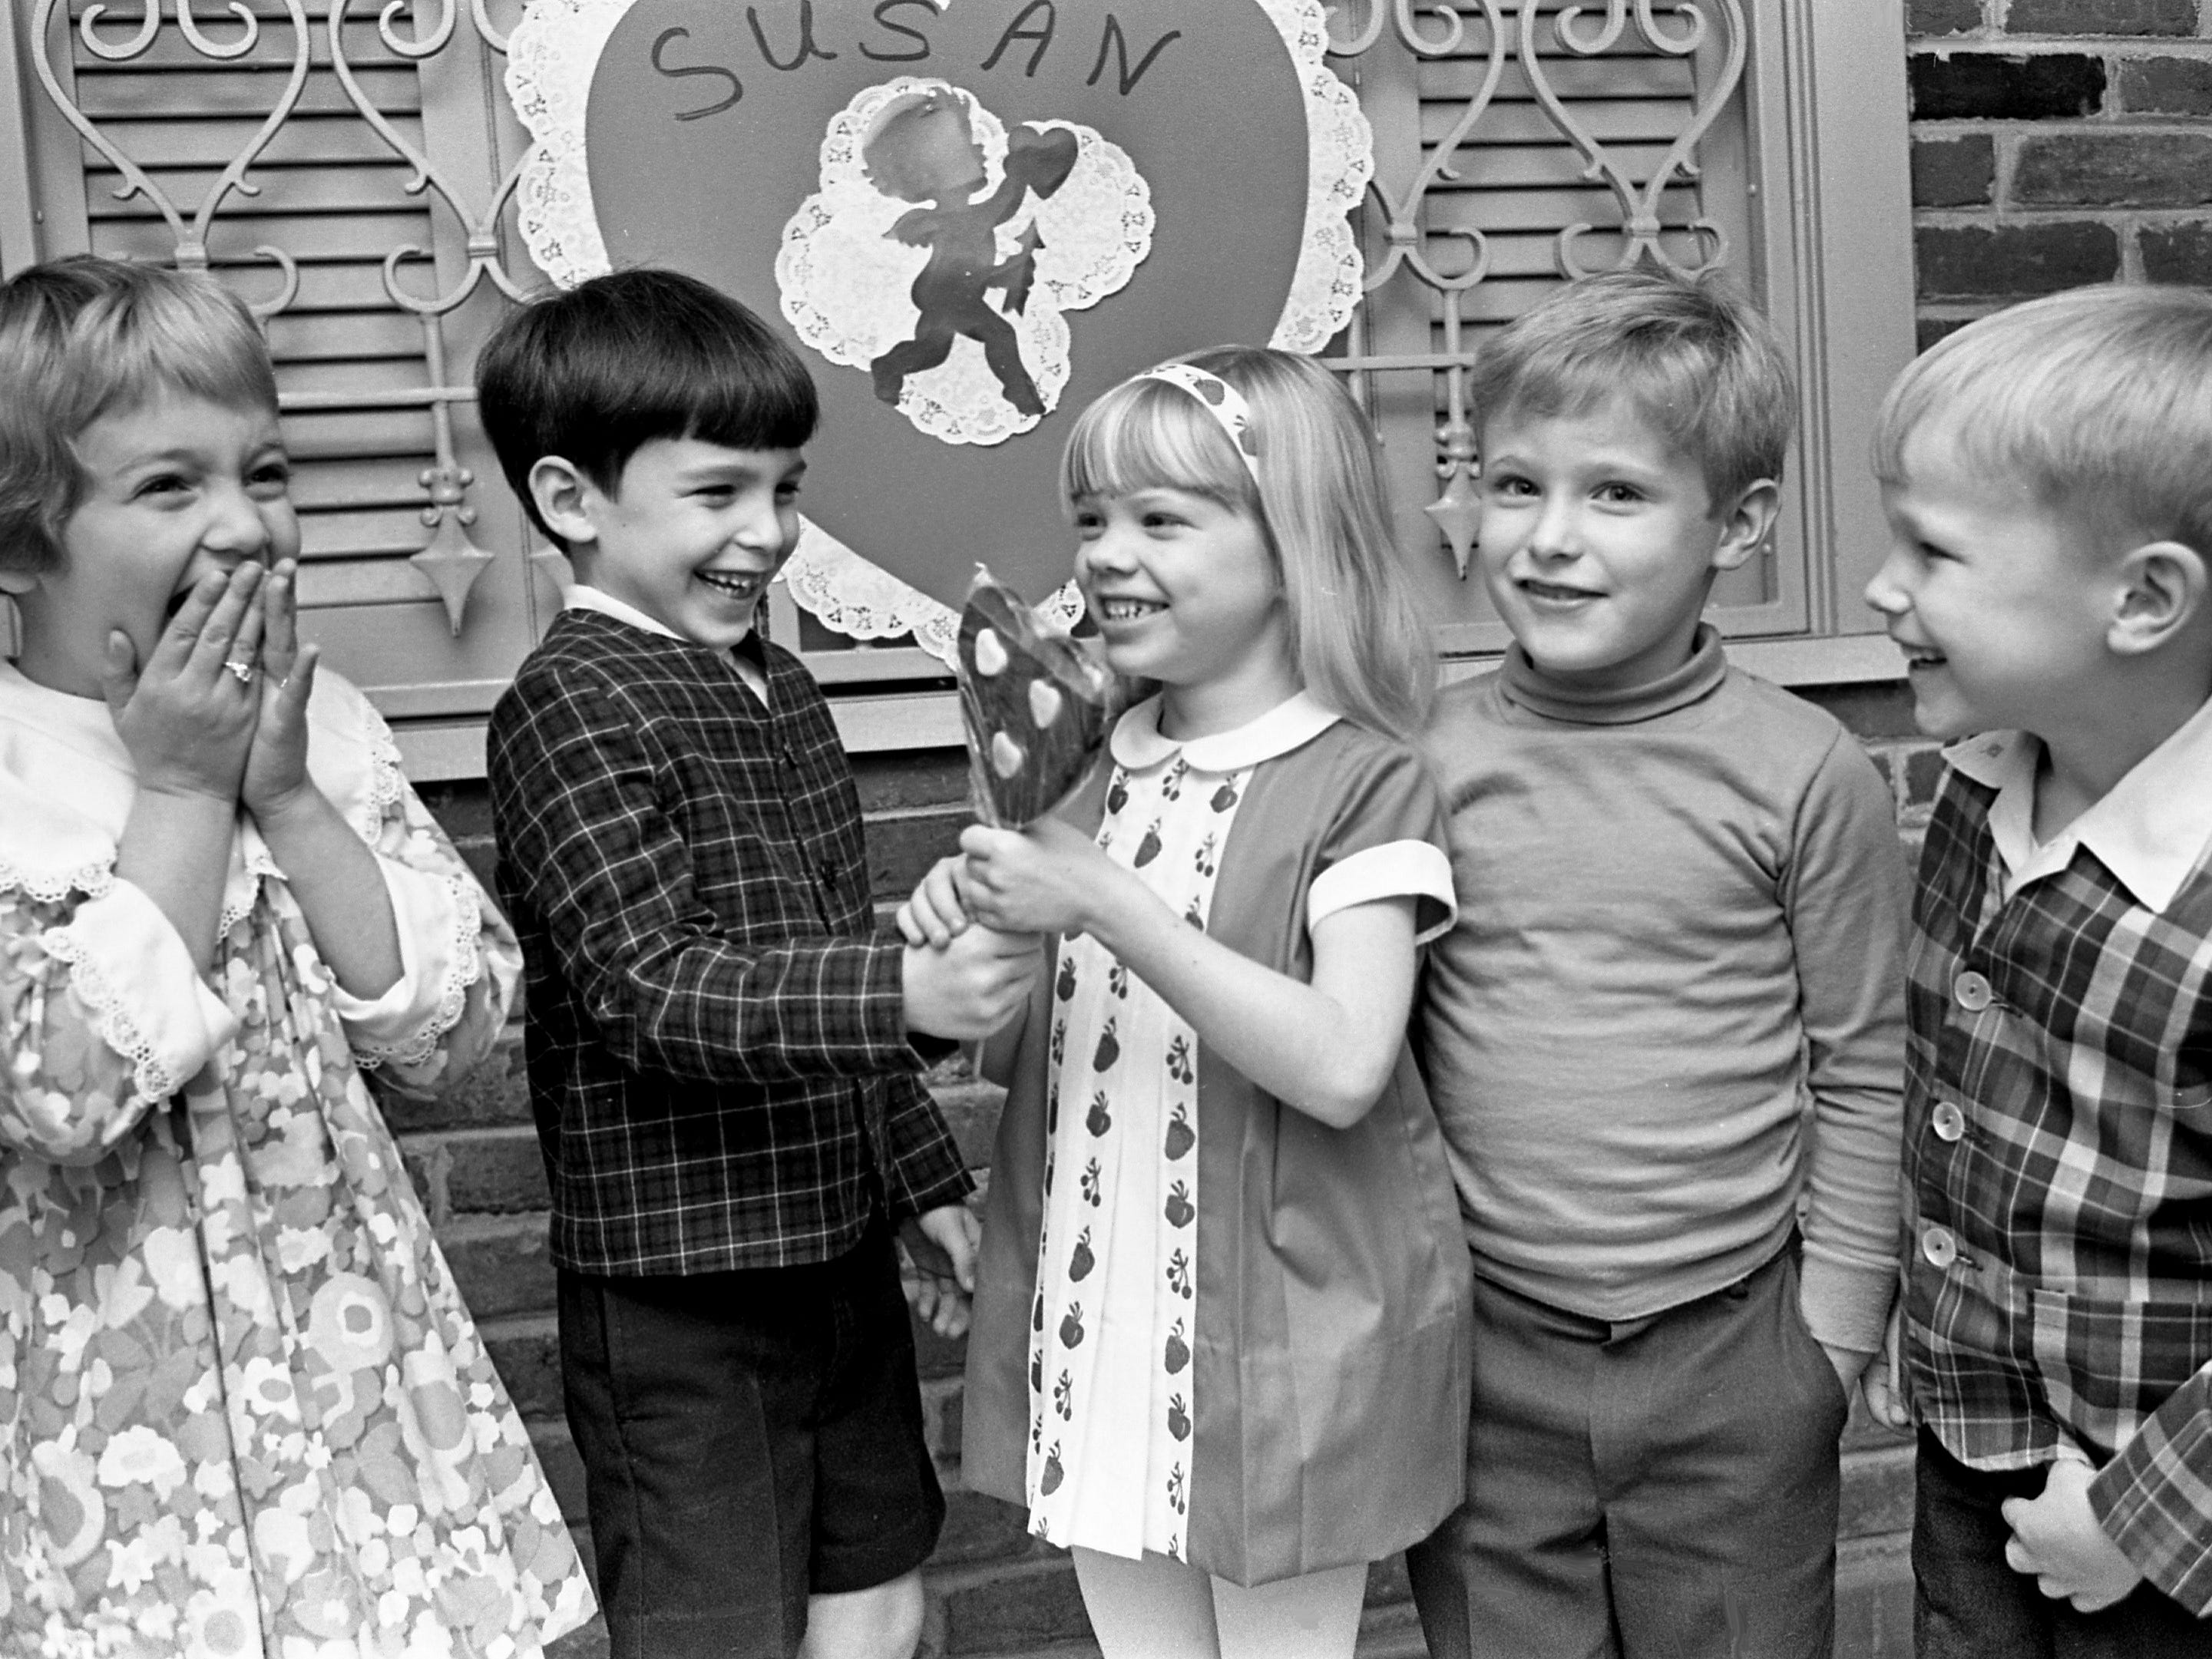 Susan Shreeve, center, was guest of honor at a Valentine party given by her mother, Mrs. George Shreeve, at the Seven Hills Club on Feb. 8, 1968. Susan is receiving a valentine gift from Tim Werthan, second from left, as Joan Richard, left, Taft Garrett and Johnny Mills look on.